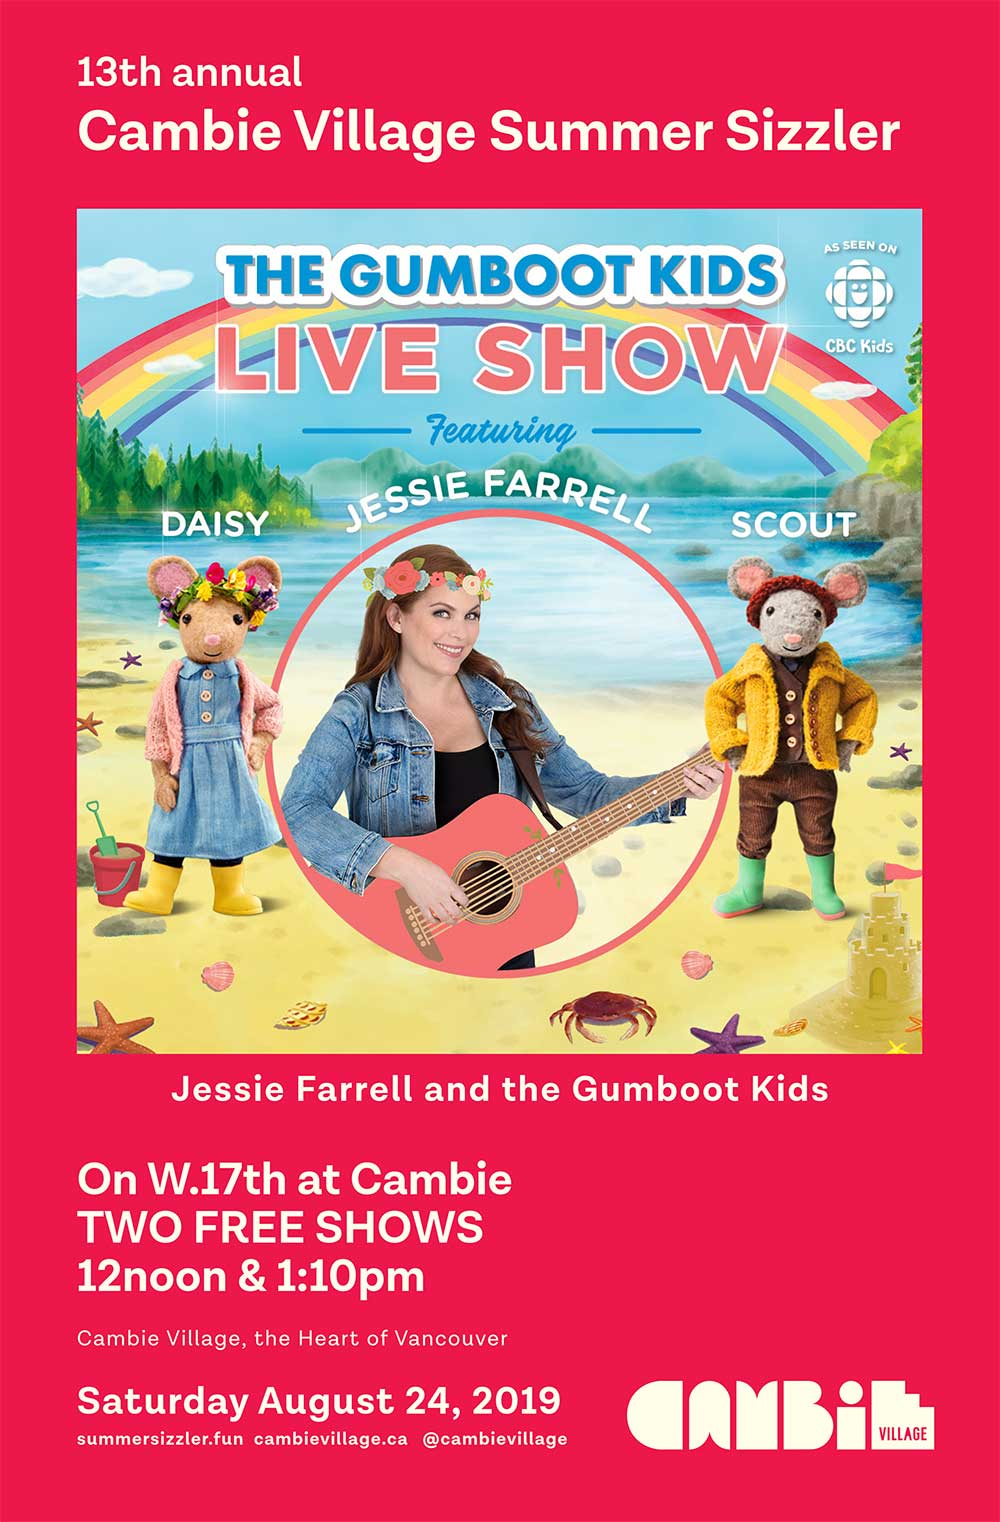 13th annual Cambie Village Summer Sizzler Jessie Farrell and the Gumboot Kids On W.17th at Cambie TWO FREE SHOWS 12noon & 1:10pm Cambie Village, the Heart of Vancouver Saturday August 24, 2019 summersizzler.fun cambievillage.ca @cambievillage